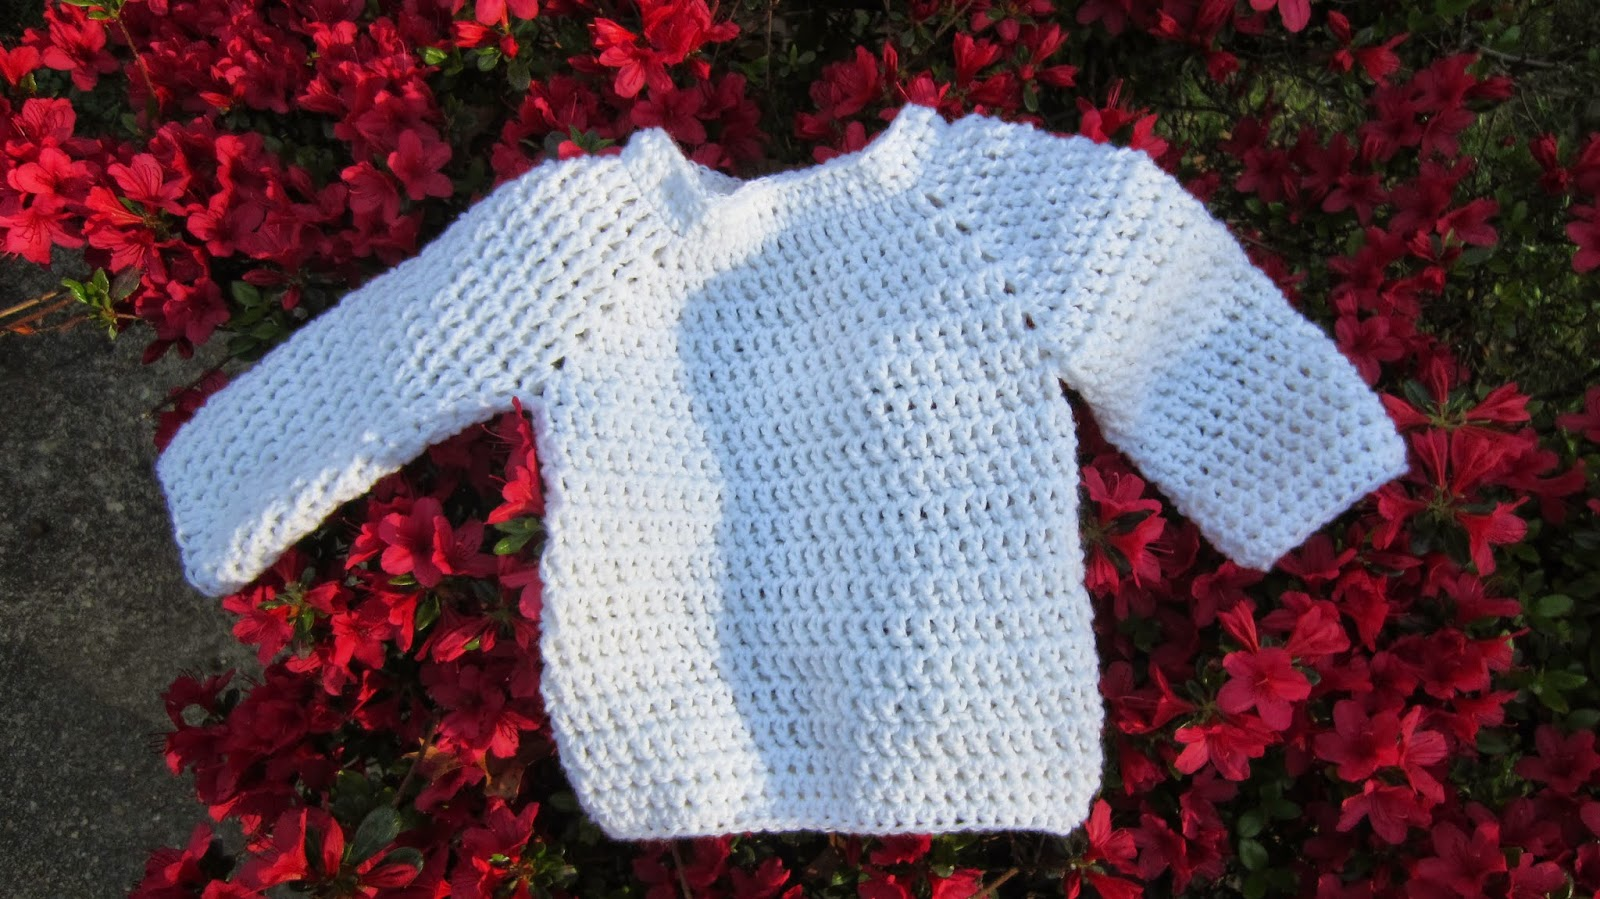 Free Crochet Pattern Toddler Pullover : Olenas Crafts: Finished Crochet Baby Pullover - Free ...